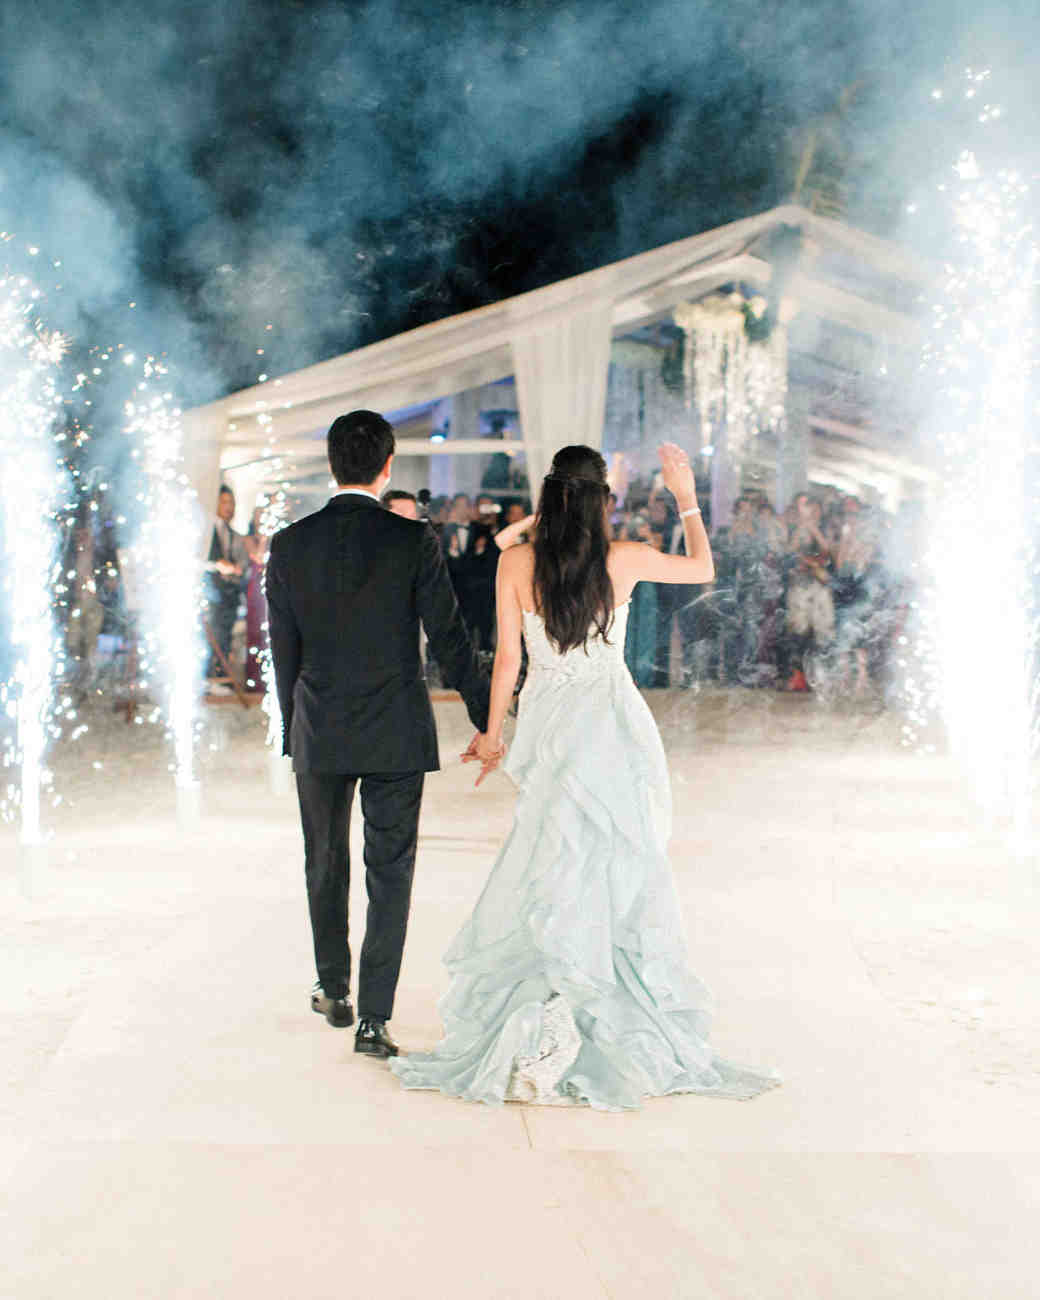 couple walking through shooting sparklers